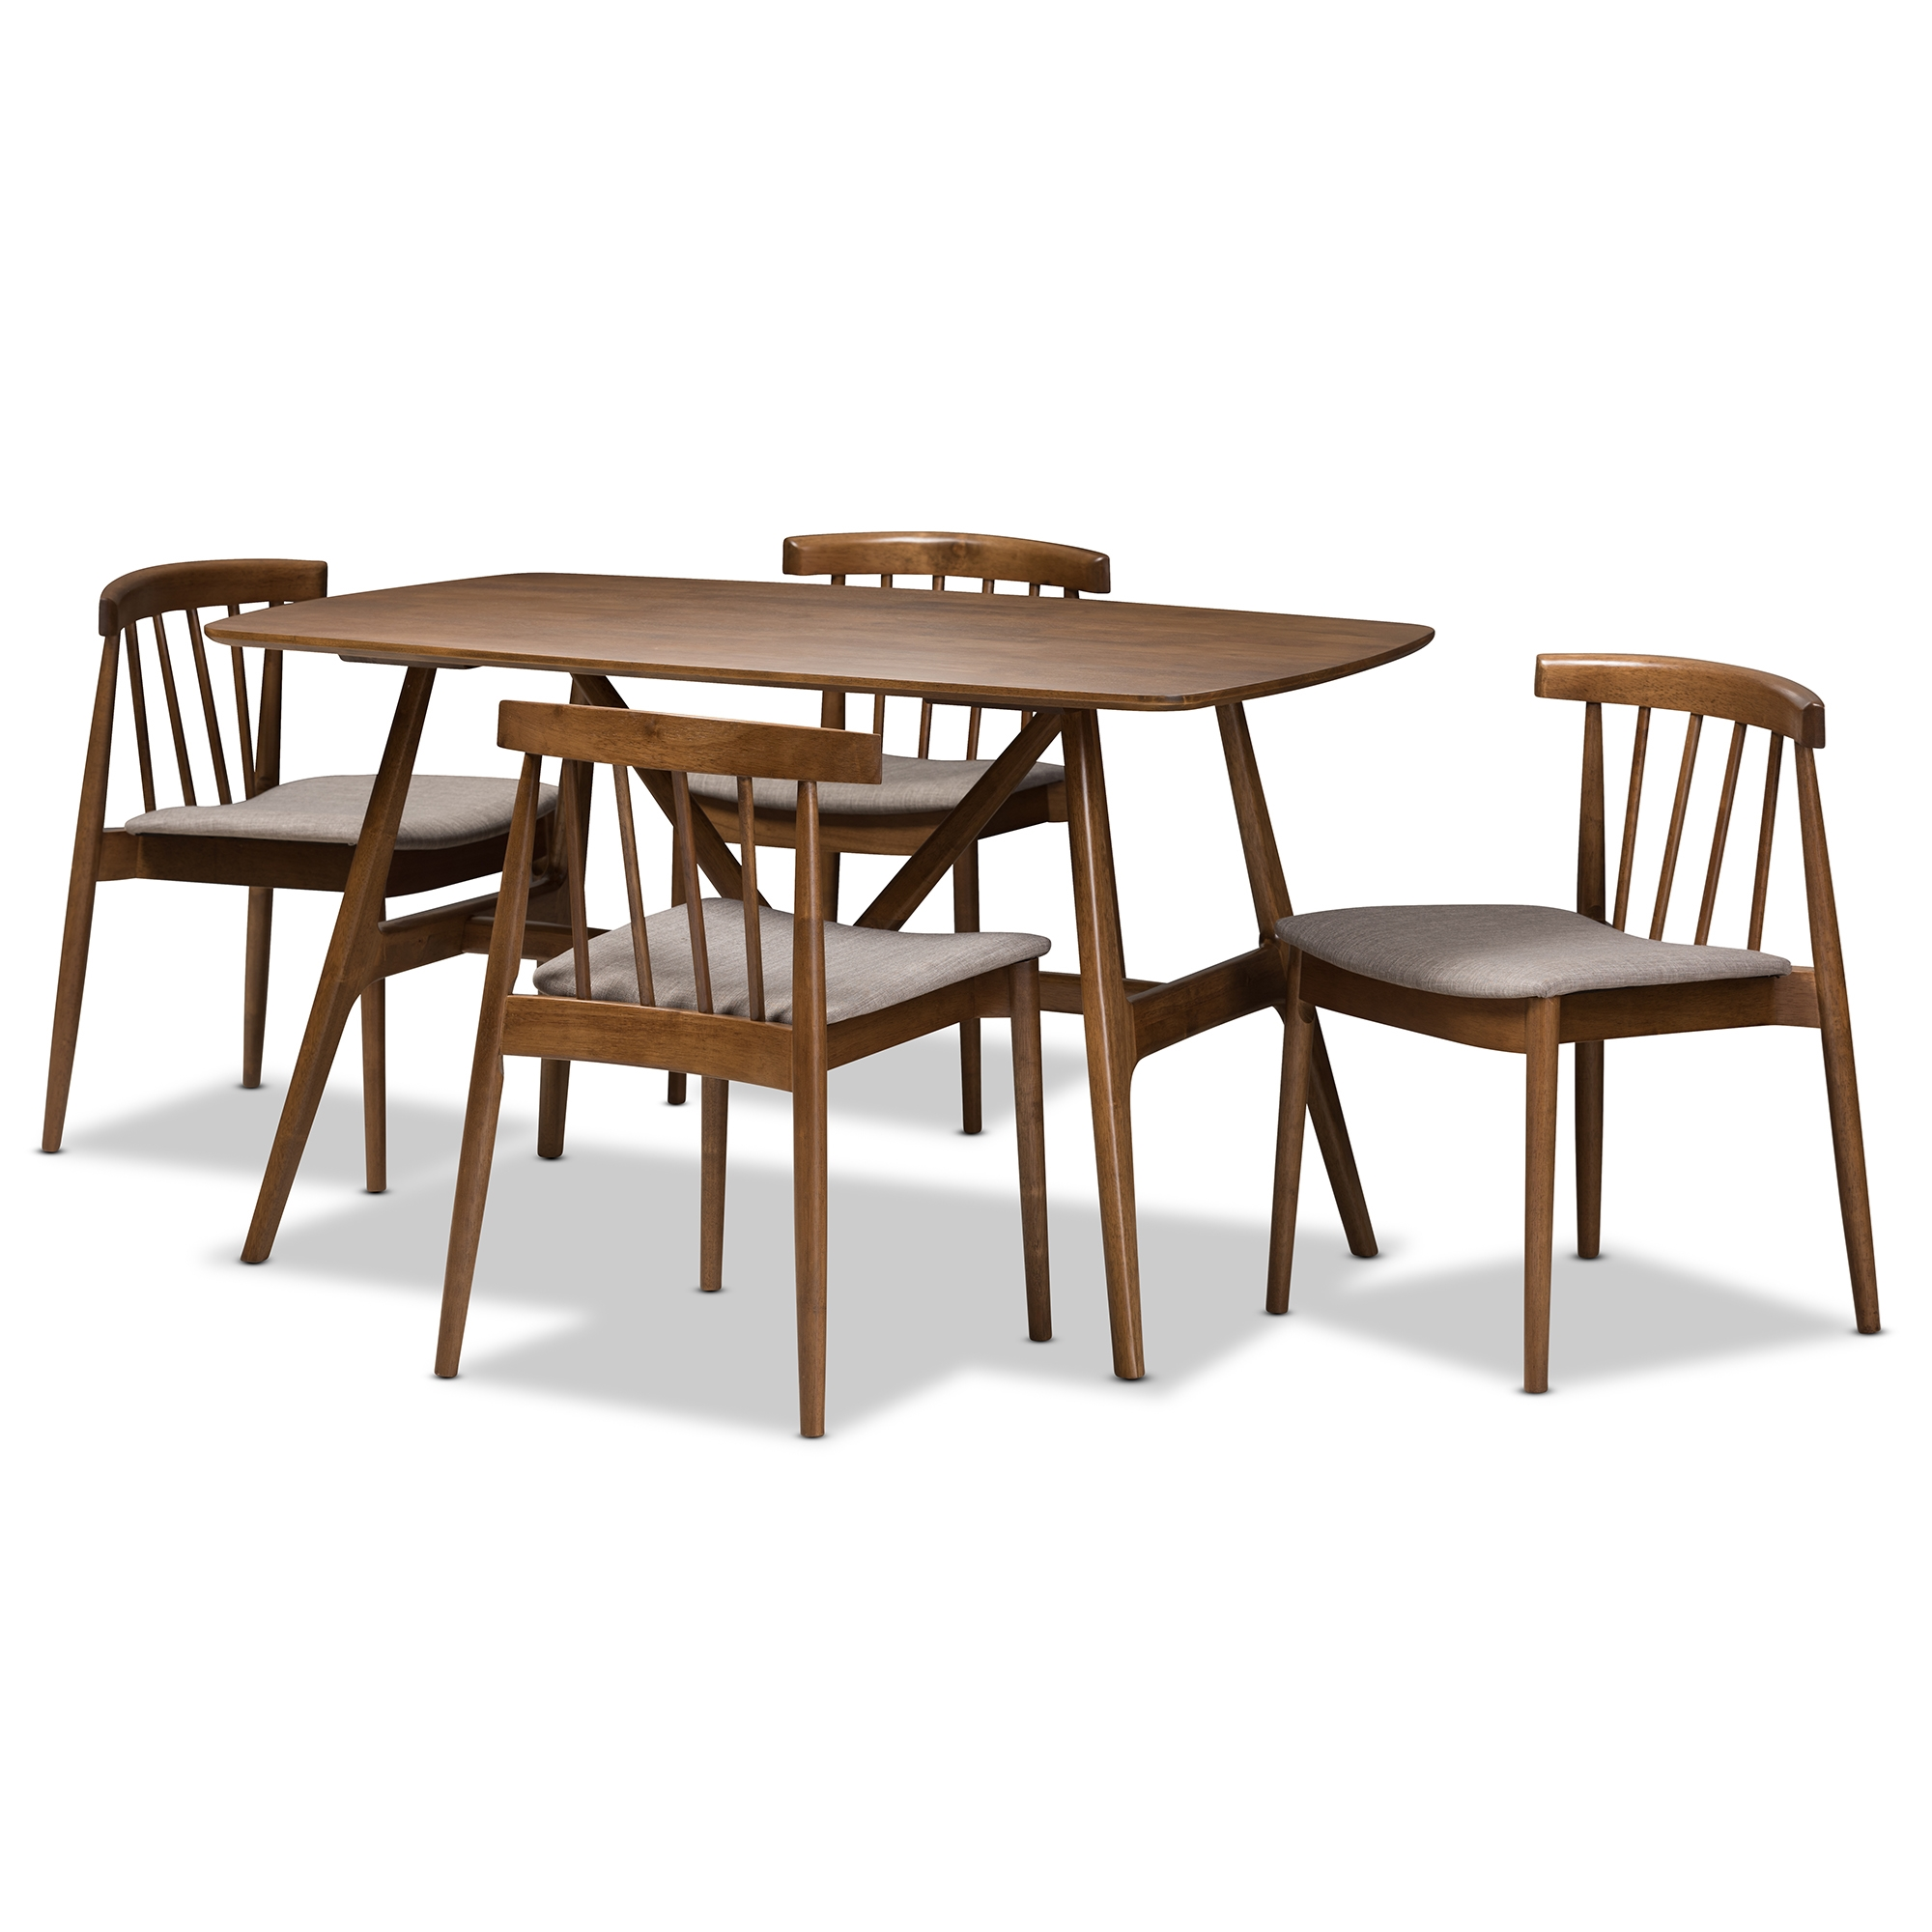 Baxton Studio Wyatt Mid Century Modern Walnut Wood 5 Piece Dining Set  Affordable Modern